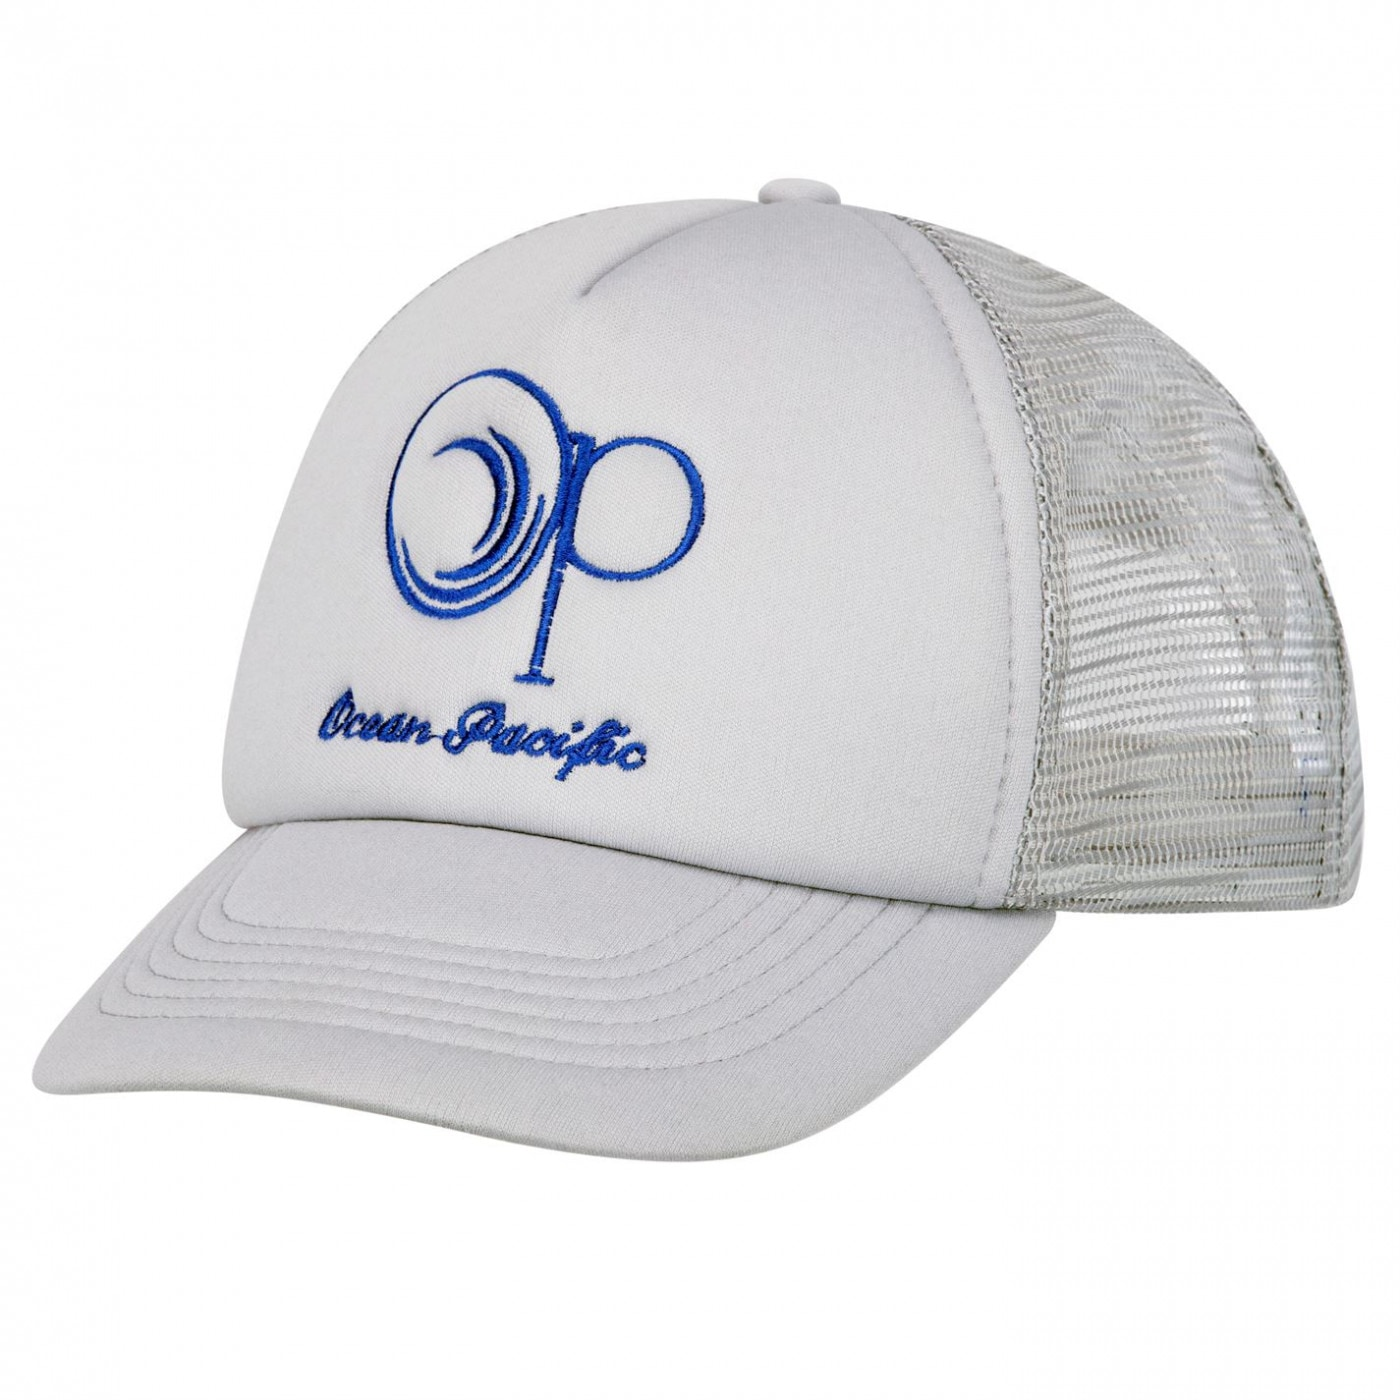 Ocean Pacific Trucker Cap Mens